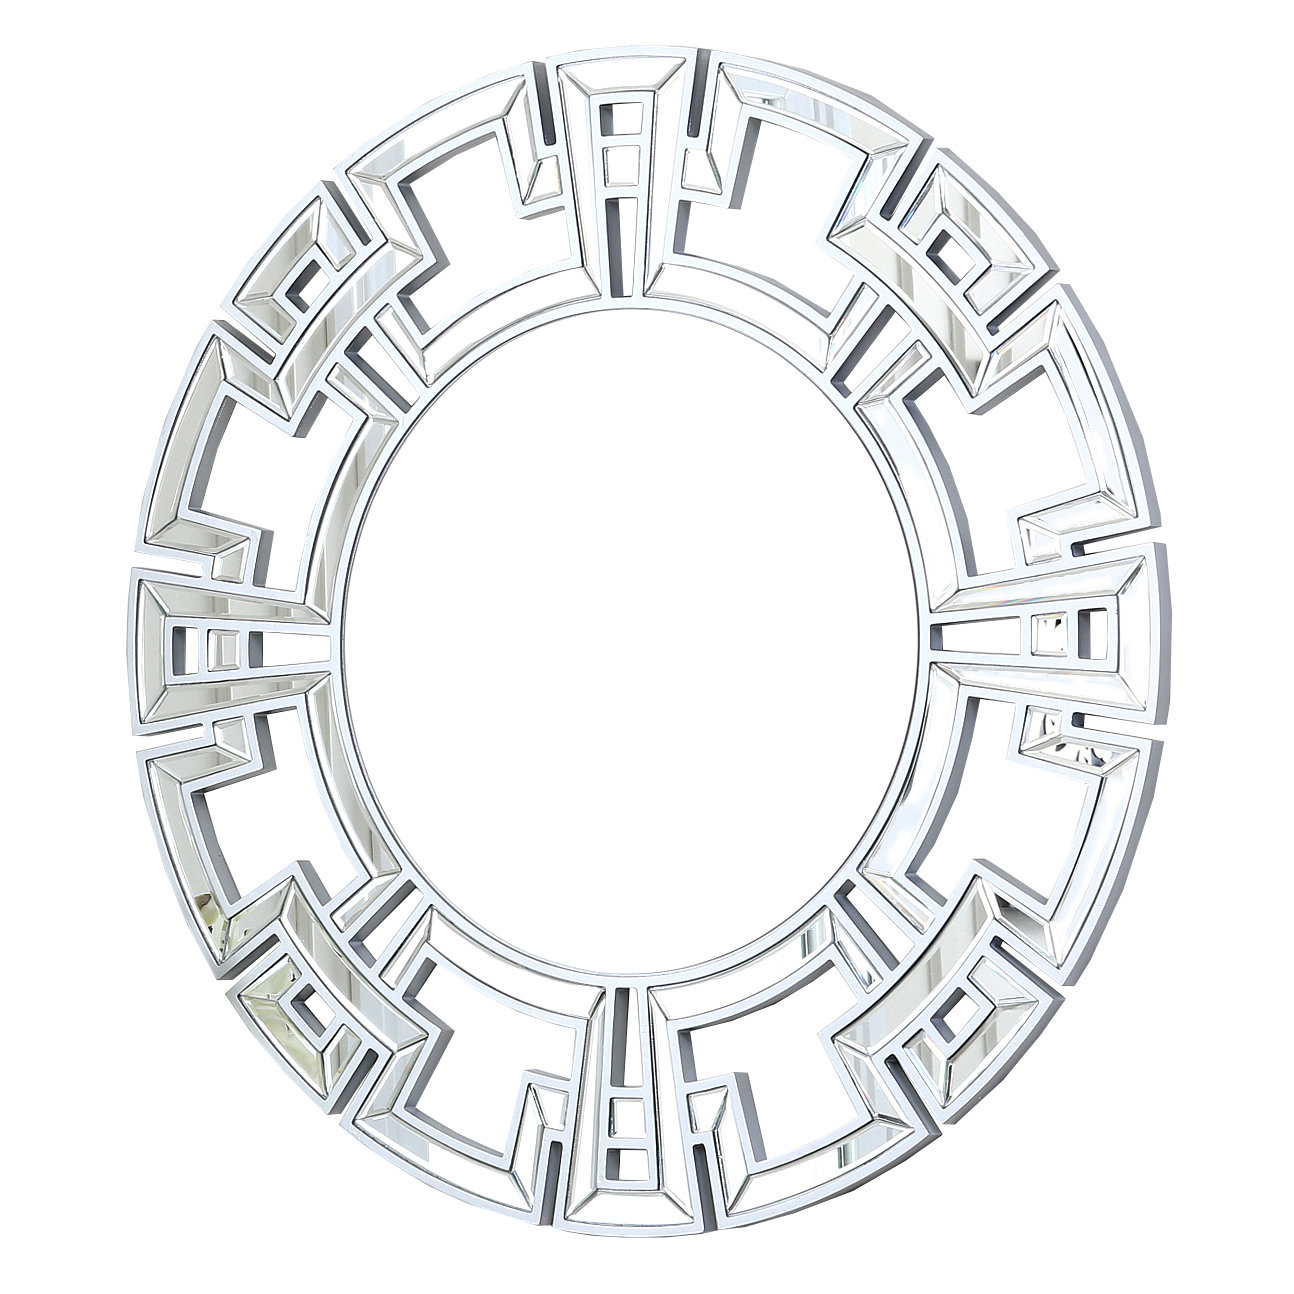 Willa Arlo Interiors Tata Openwork Round Wall Mirror Regarding Tata Openwork Round Wall Mirrors (Image 17 of 20)